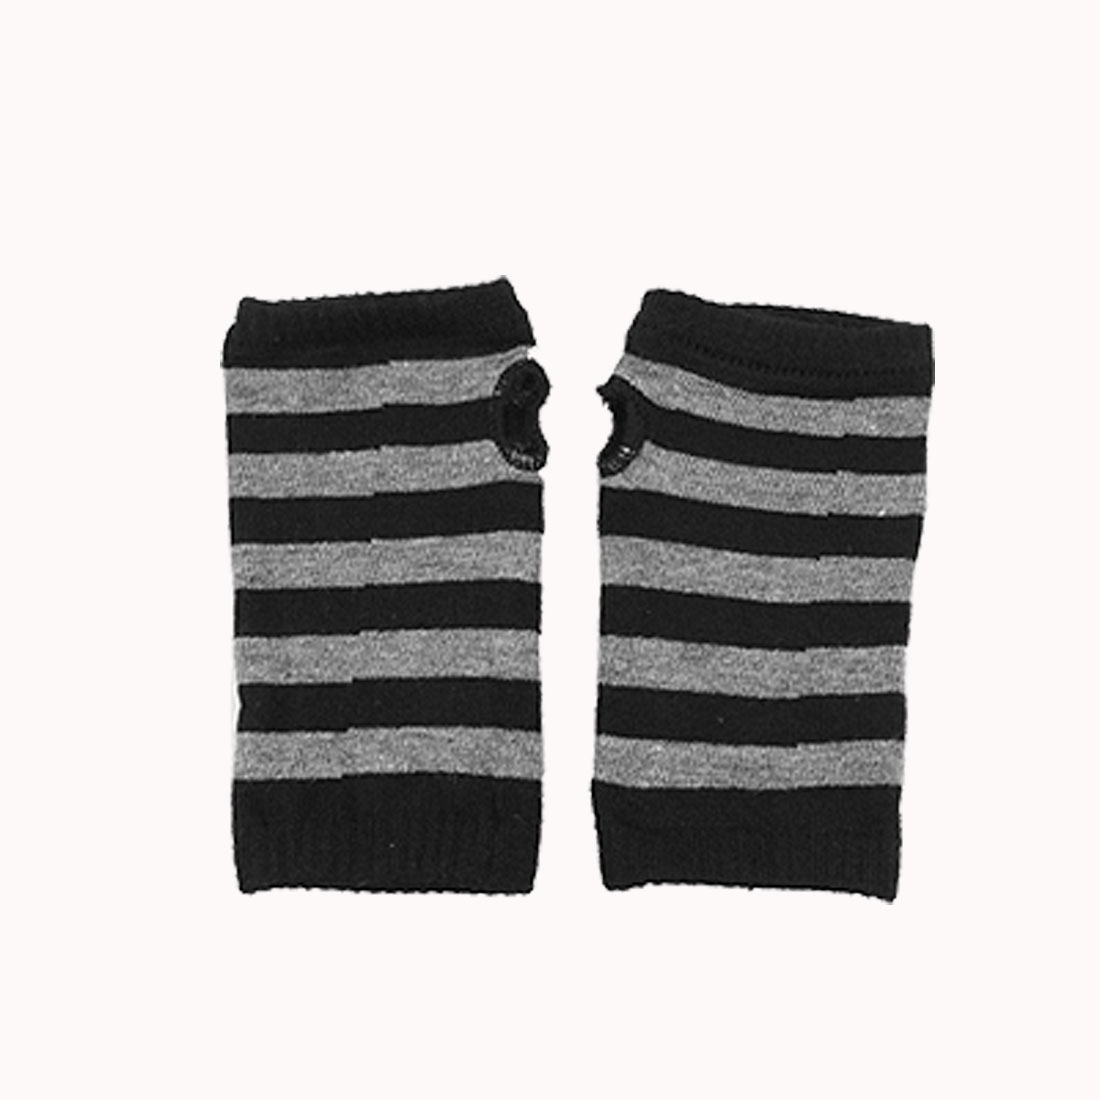 Pair Black Gray Striped Mitten Warm Fingerless Gloves for Ladies